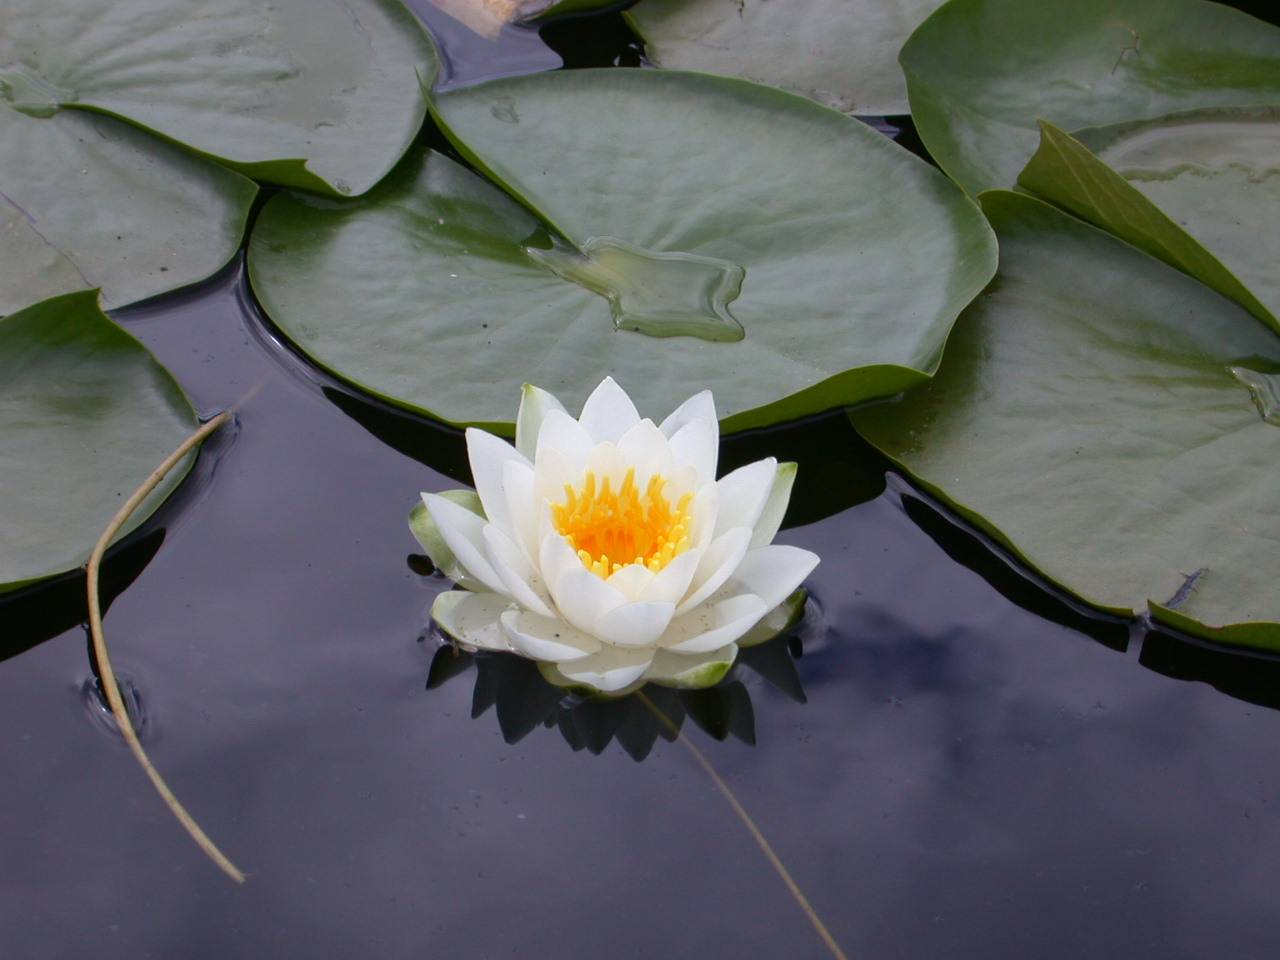 Media lotus flower wallpapers high quality and wide screen lotus flower wallpapers high quality and wide screen izmirmasajfo